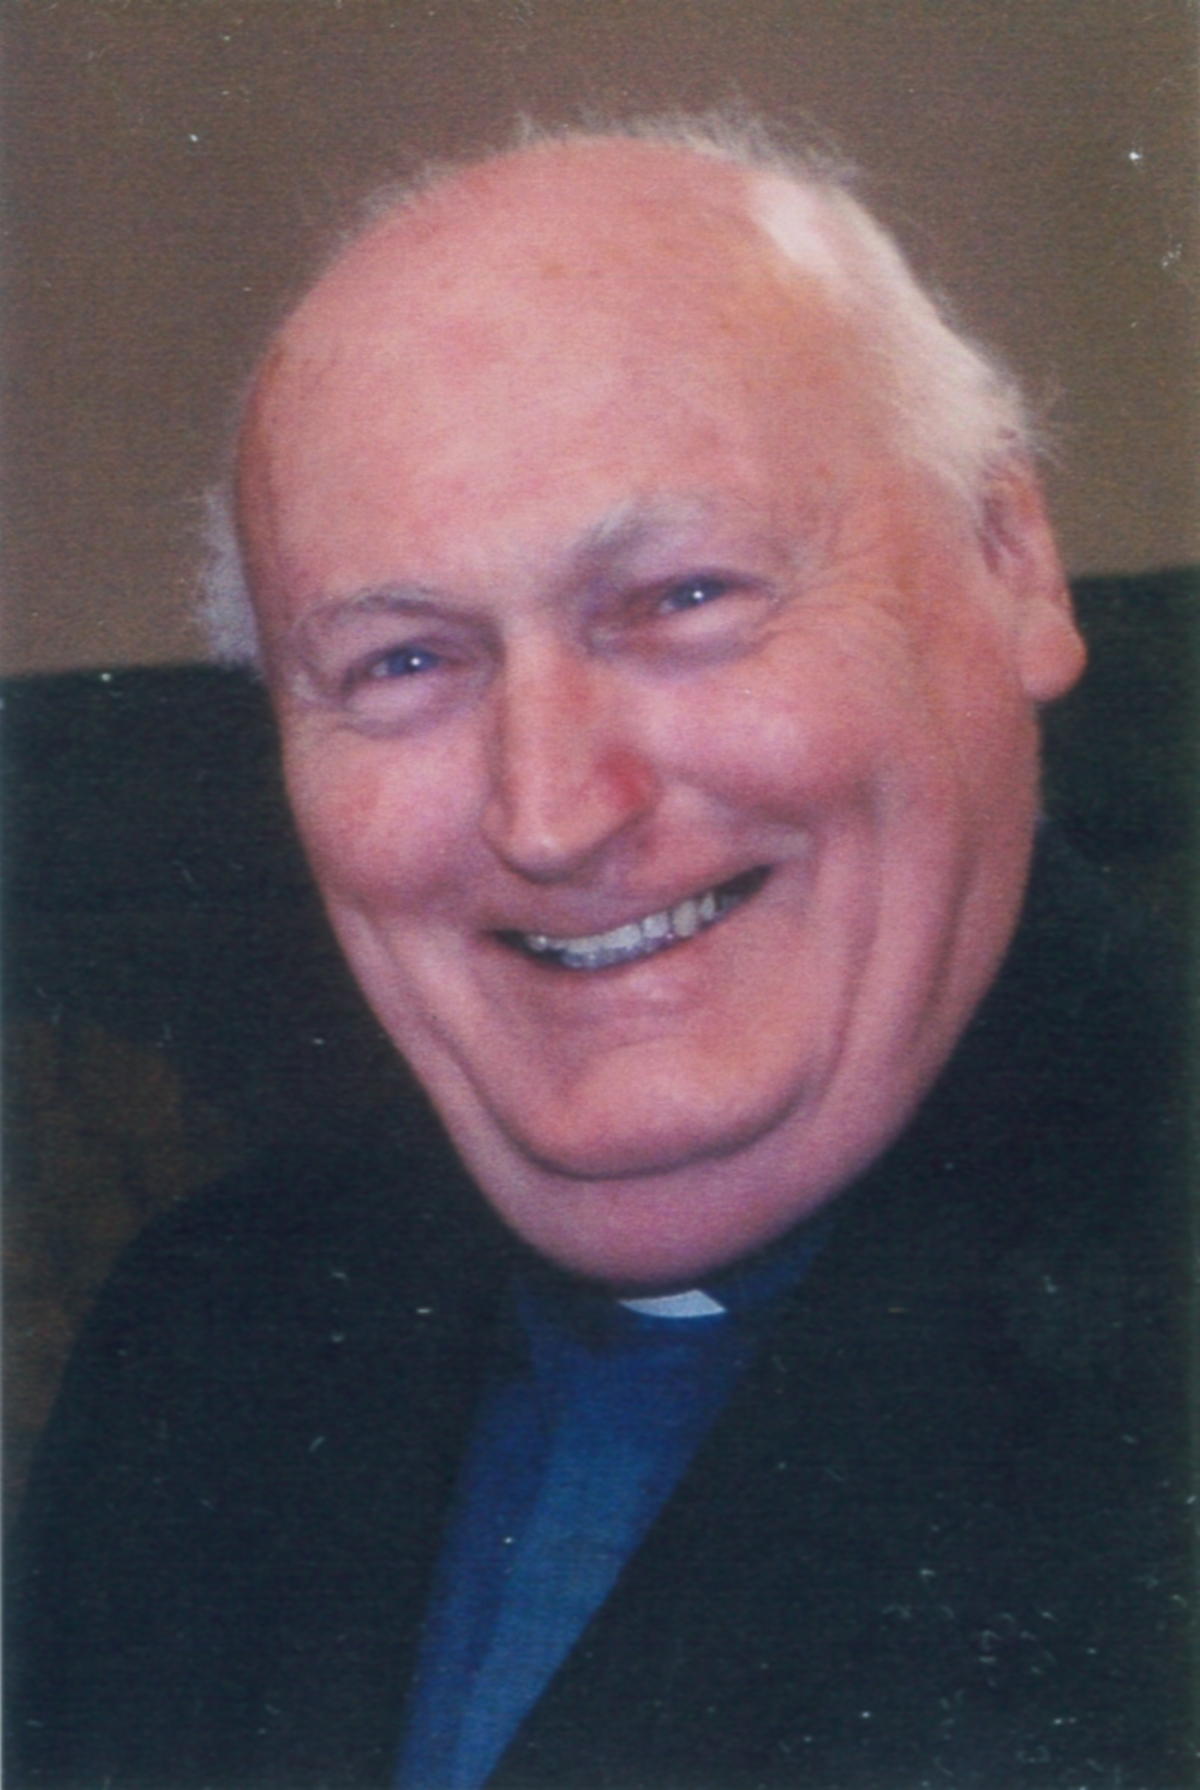 Redcar parish priest dies after short but severe illness (From The Northern Echo)